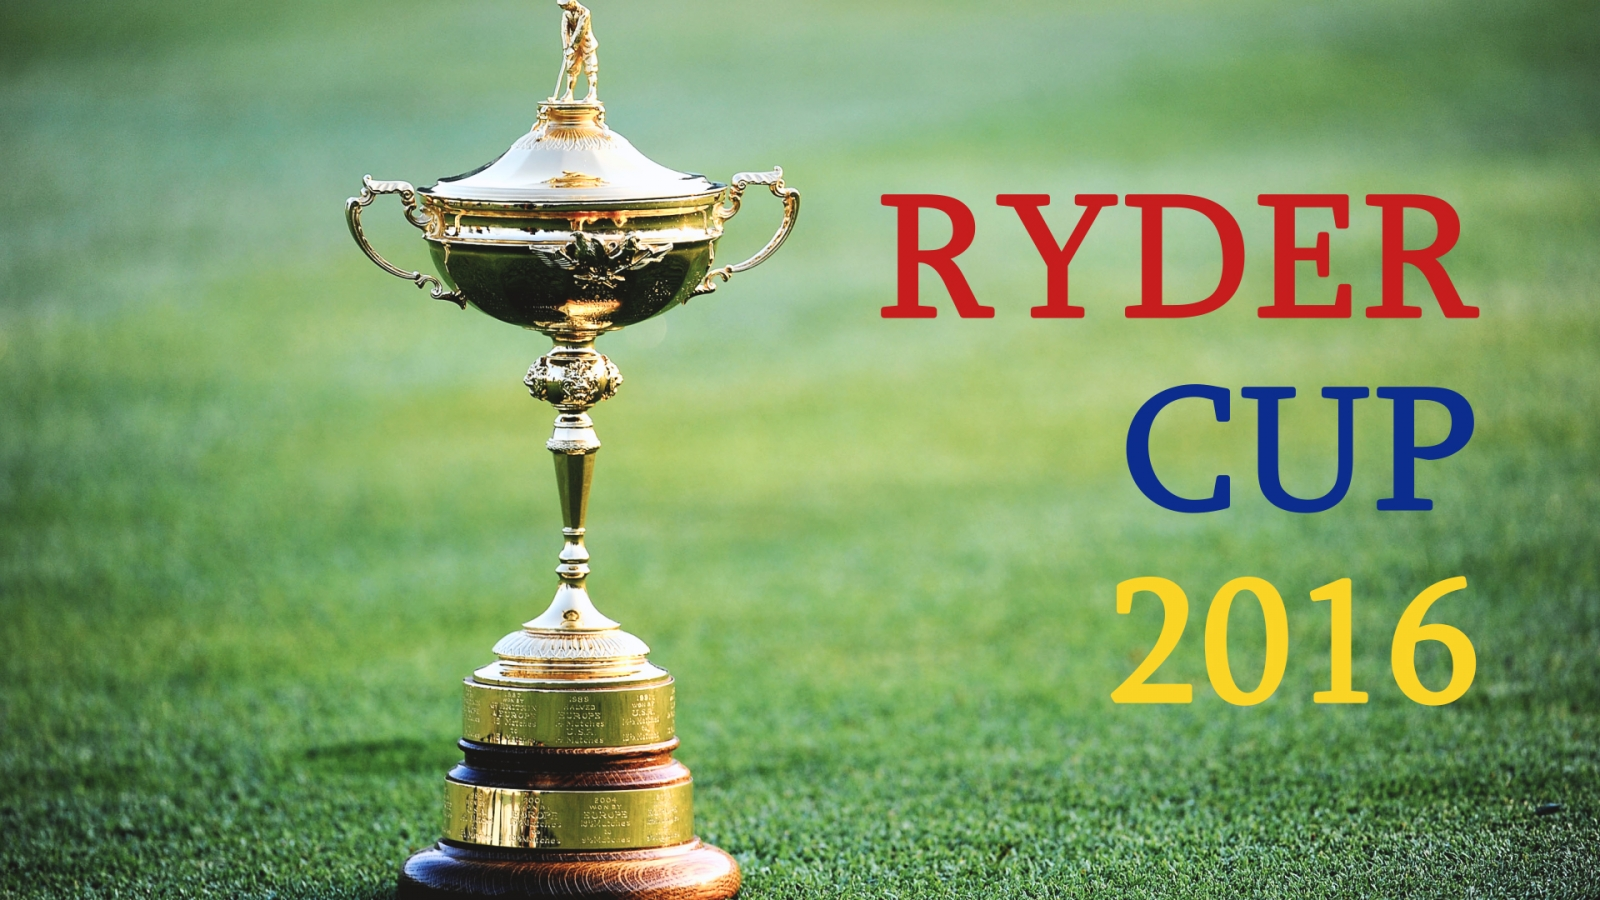 ryder cup 2016 everything you need to know. Black Bedroom Furniture Sets. Home Design Ideas